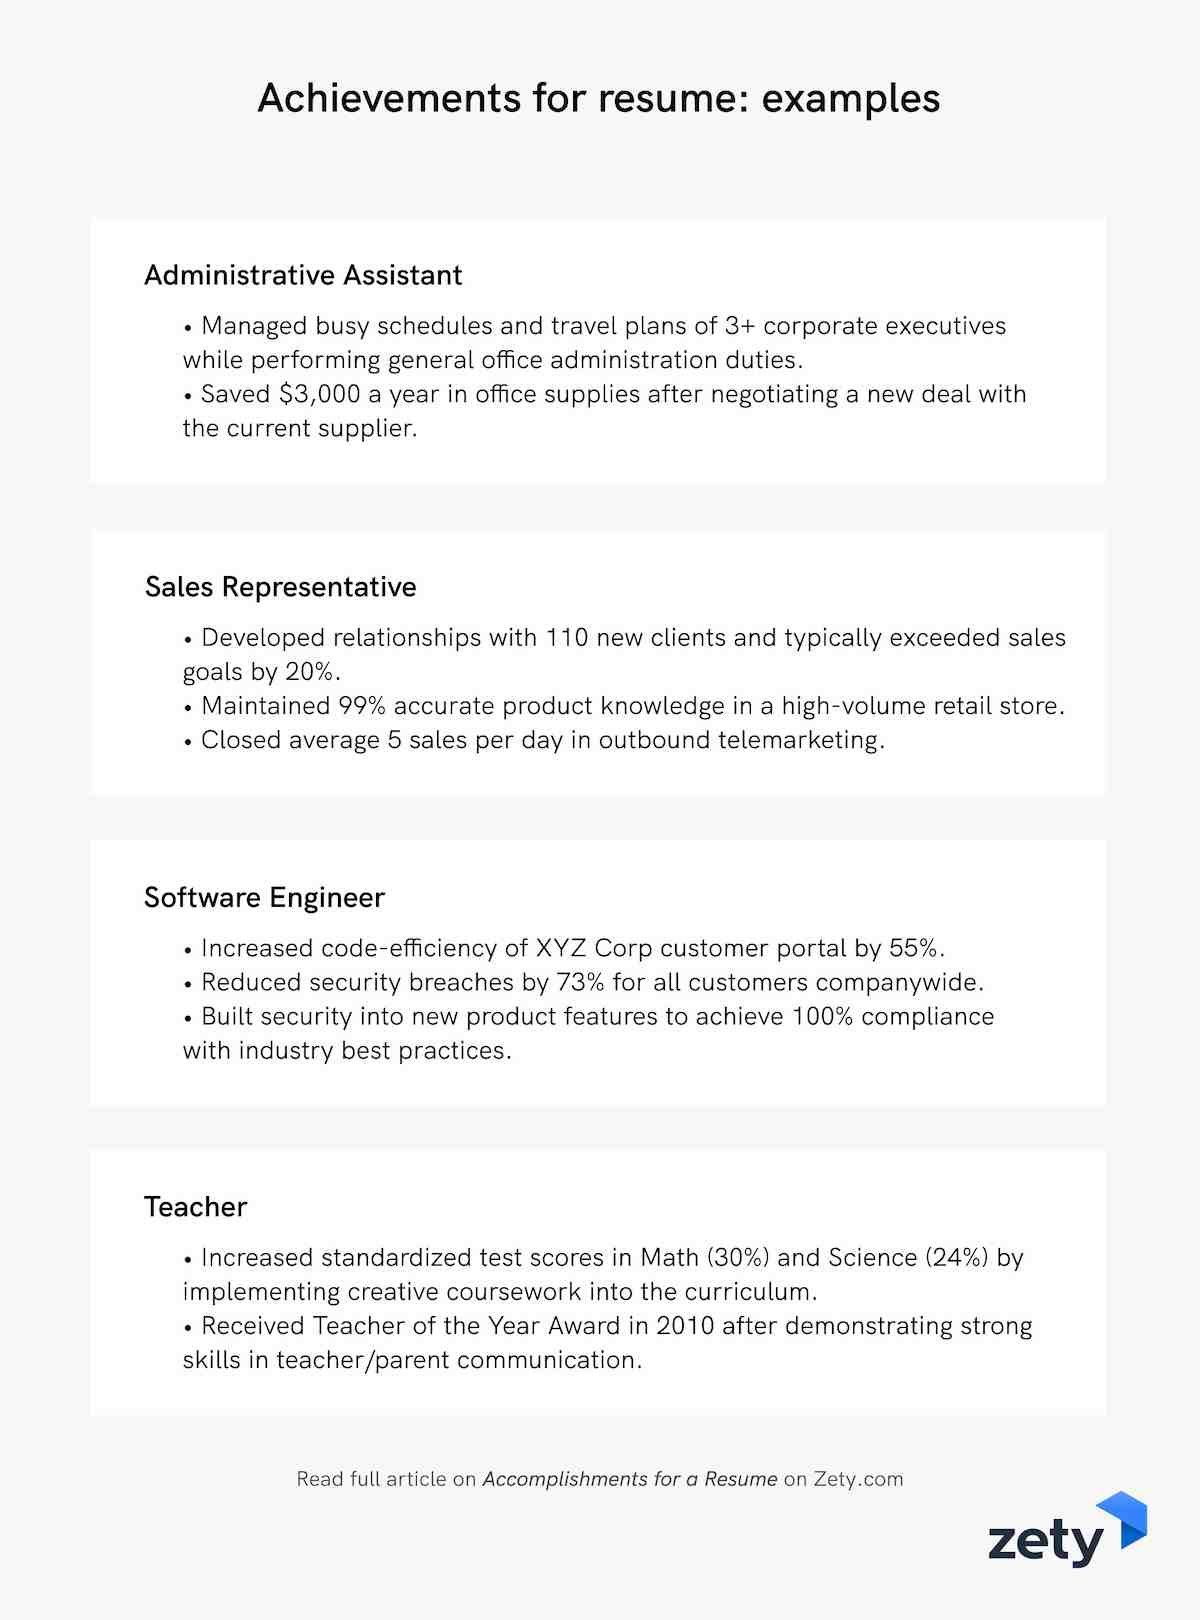 accomplishments for resume achievements awards skills and examples public health graduate Resume Skills And Accomplishments For Resume Examples